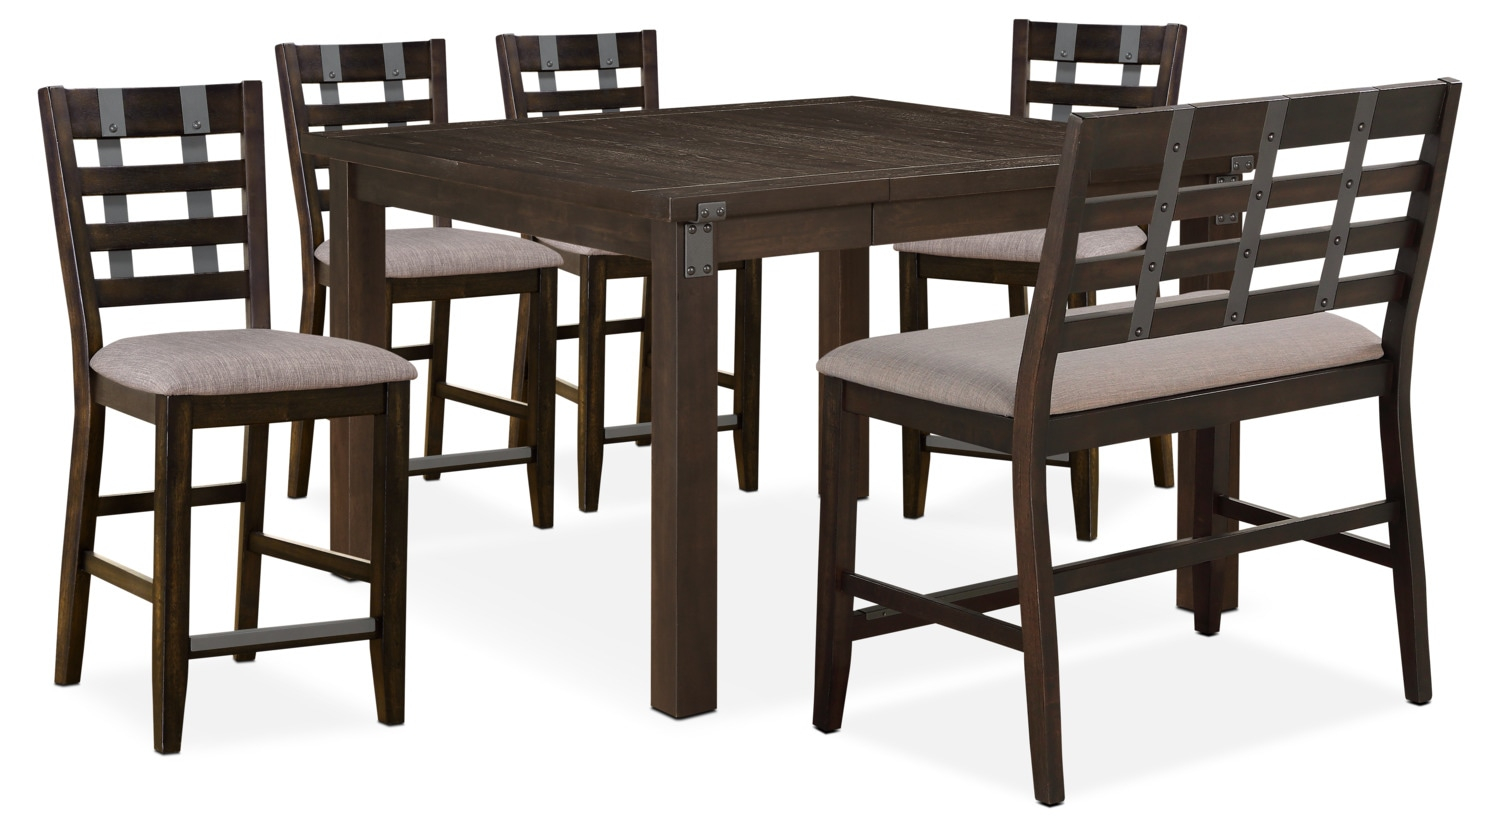 Hampton Counter Height Dining Table 4 Stools And Bench within dimensions 1500 X 829